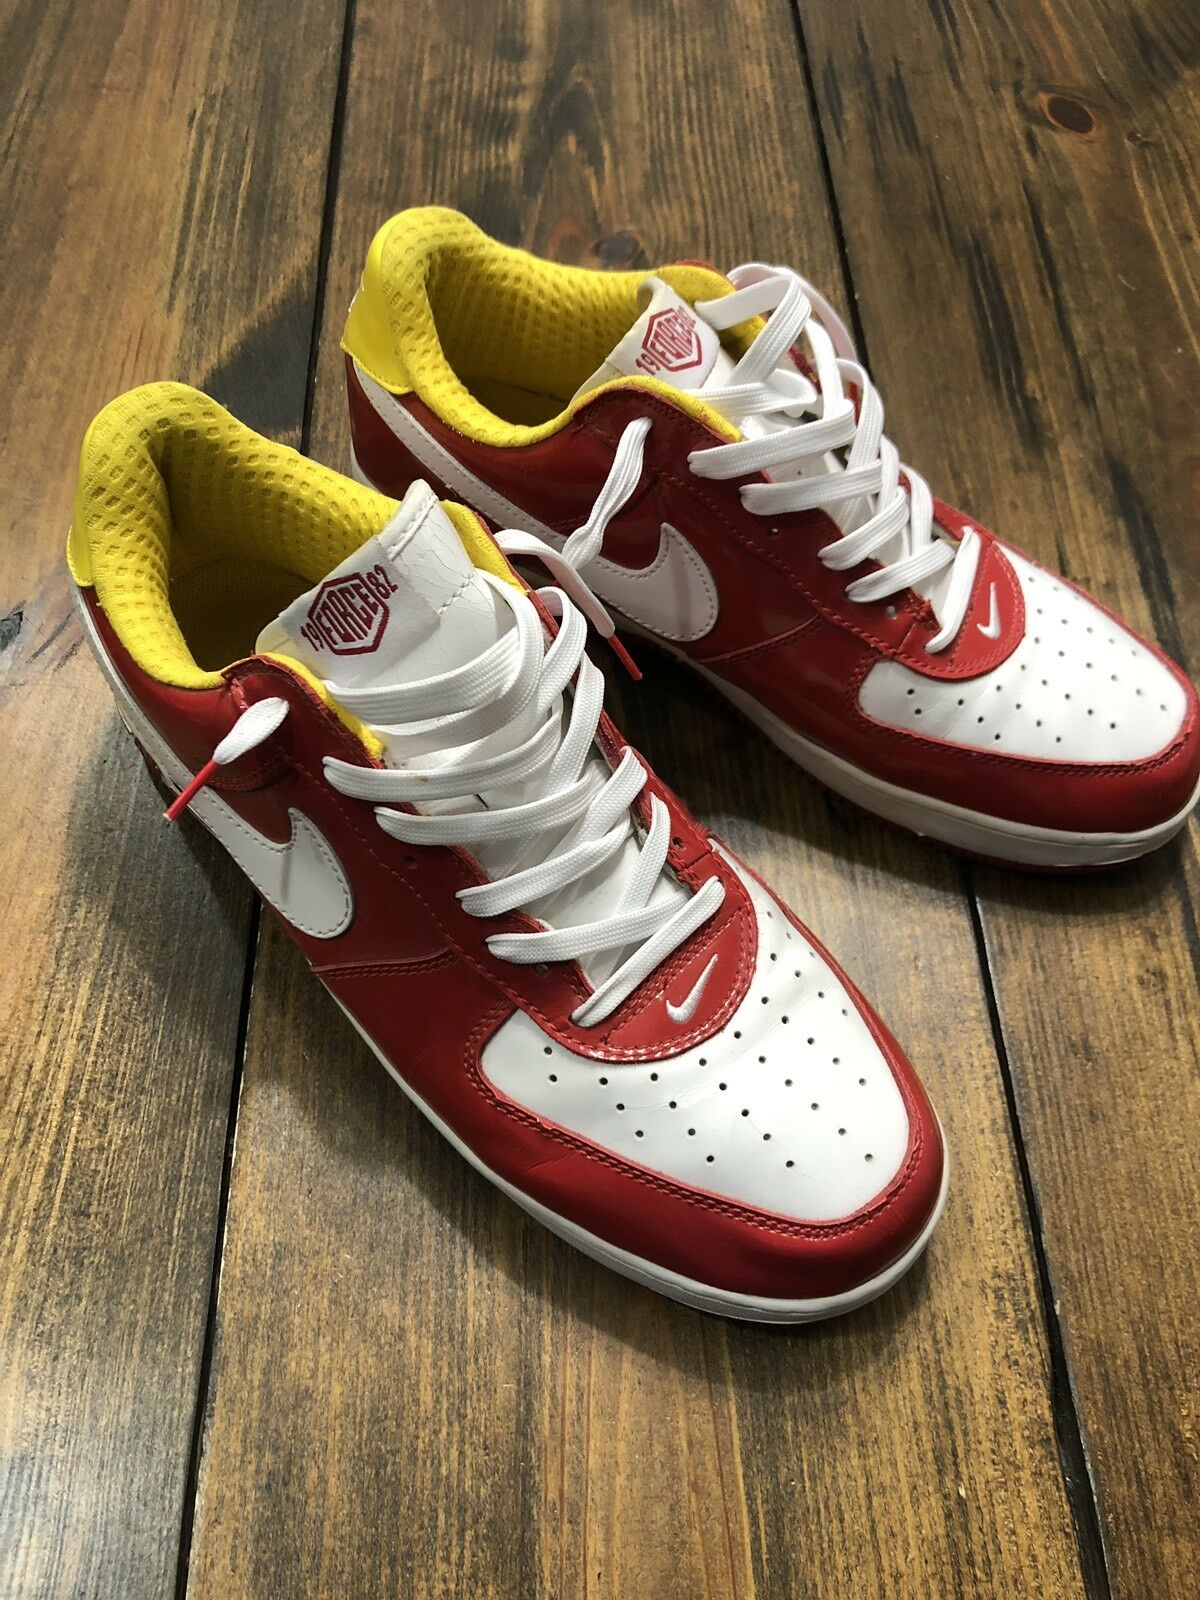 2005 Nike Air Force 1 Premium Hoops Pack Red White Maize • 313249-611 • 13